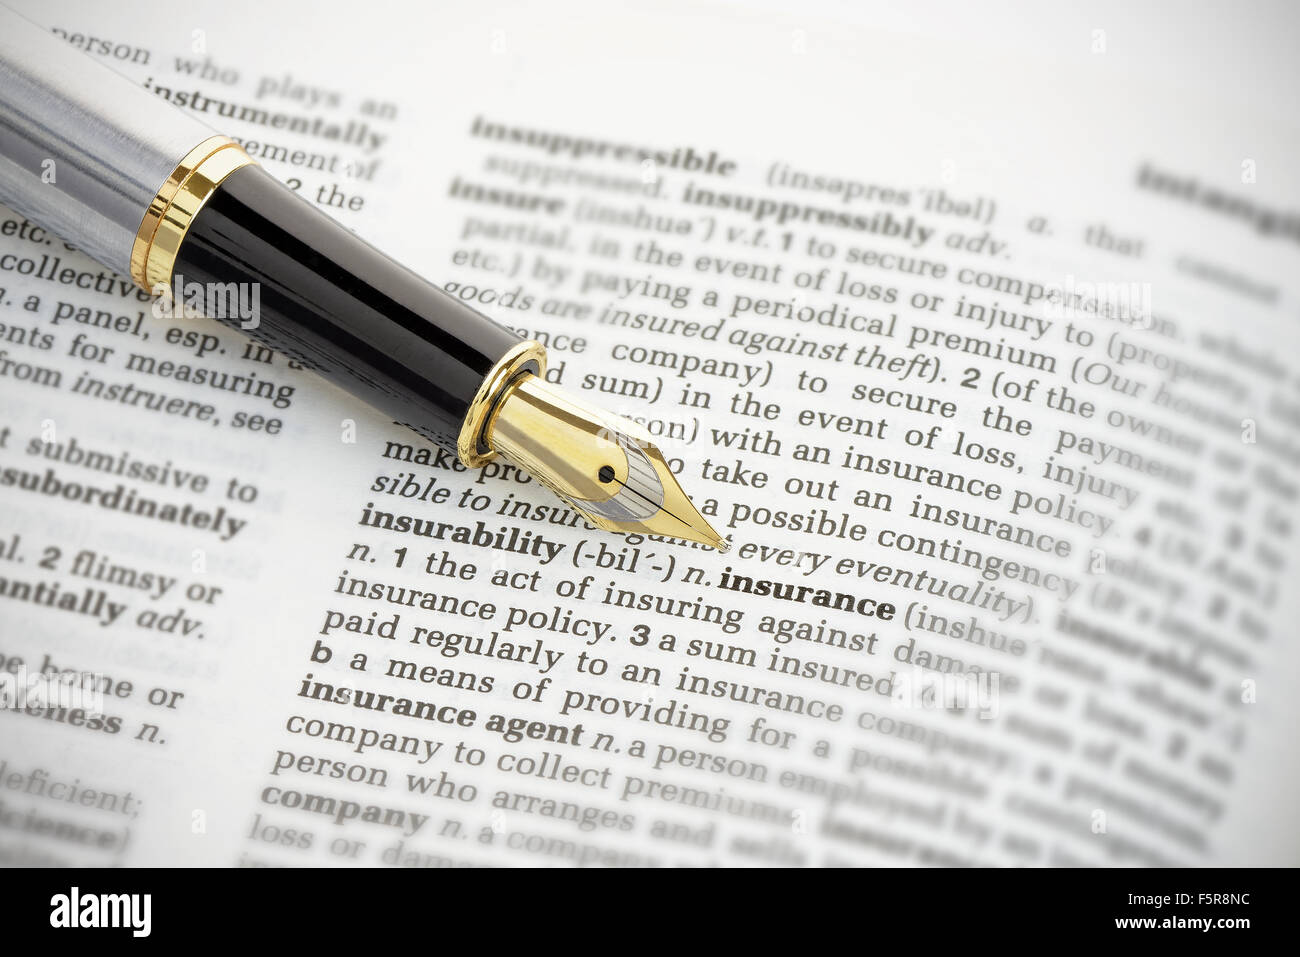 Fountain pen pointing to the word 'insurance' on the page of a generic dictionary. - Stock Image